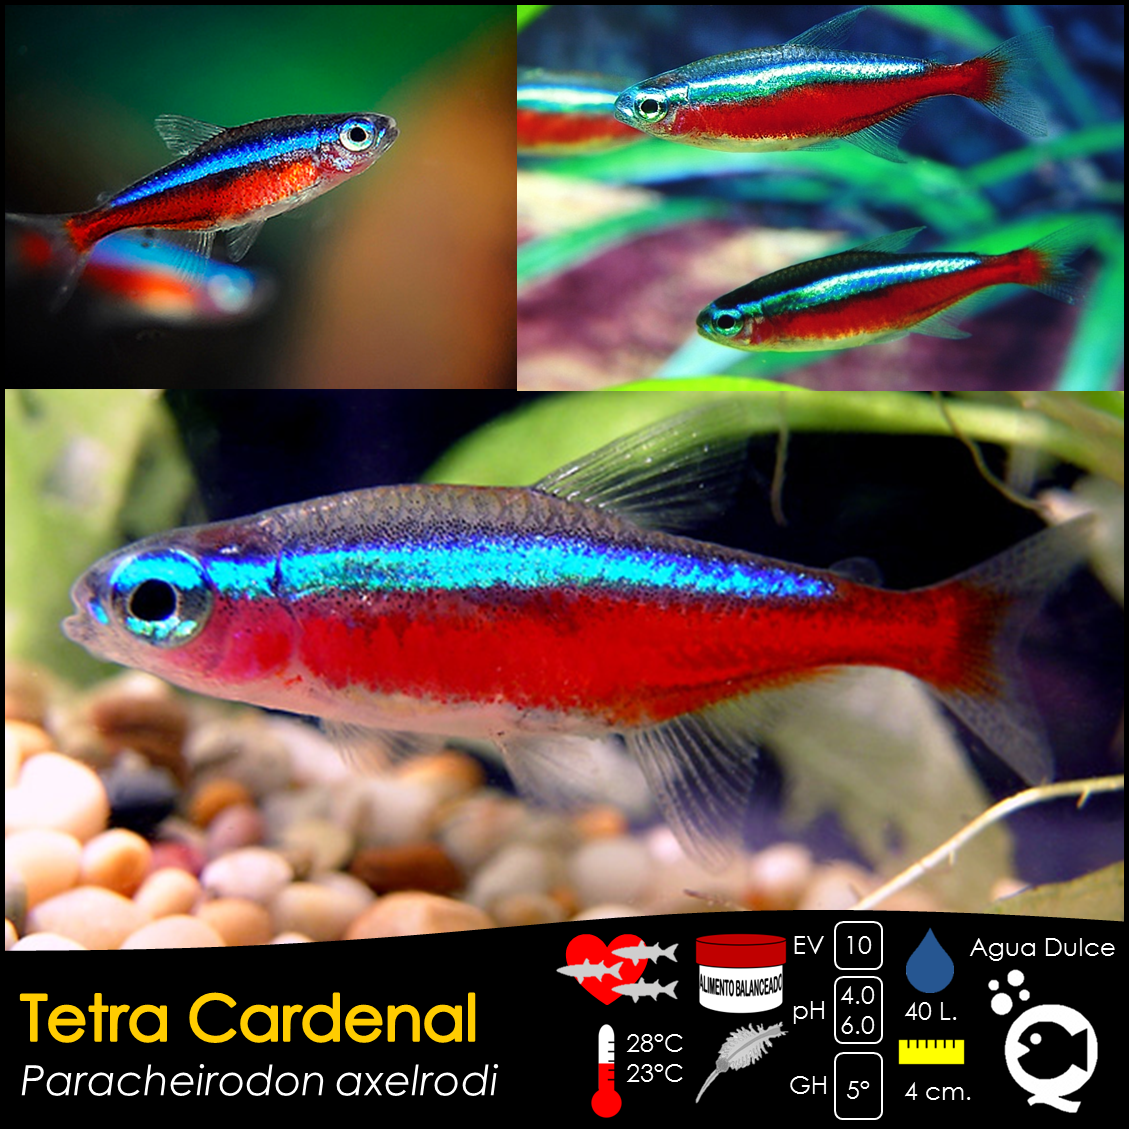 Neon tetra for sale aquariumfish net - Tetra Cardenal De Venta En Aquatic Shop Acuario